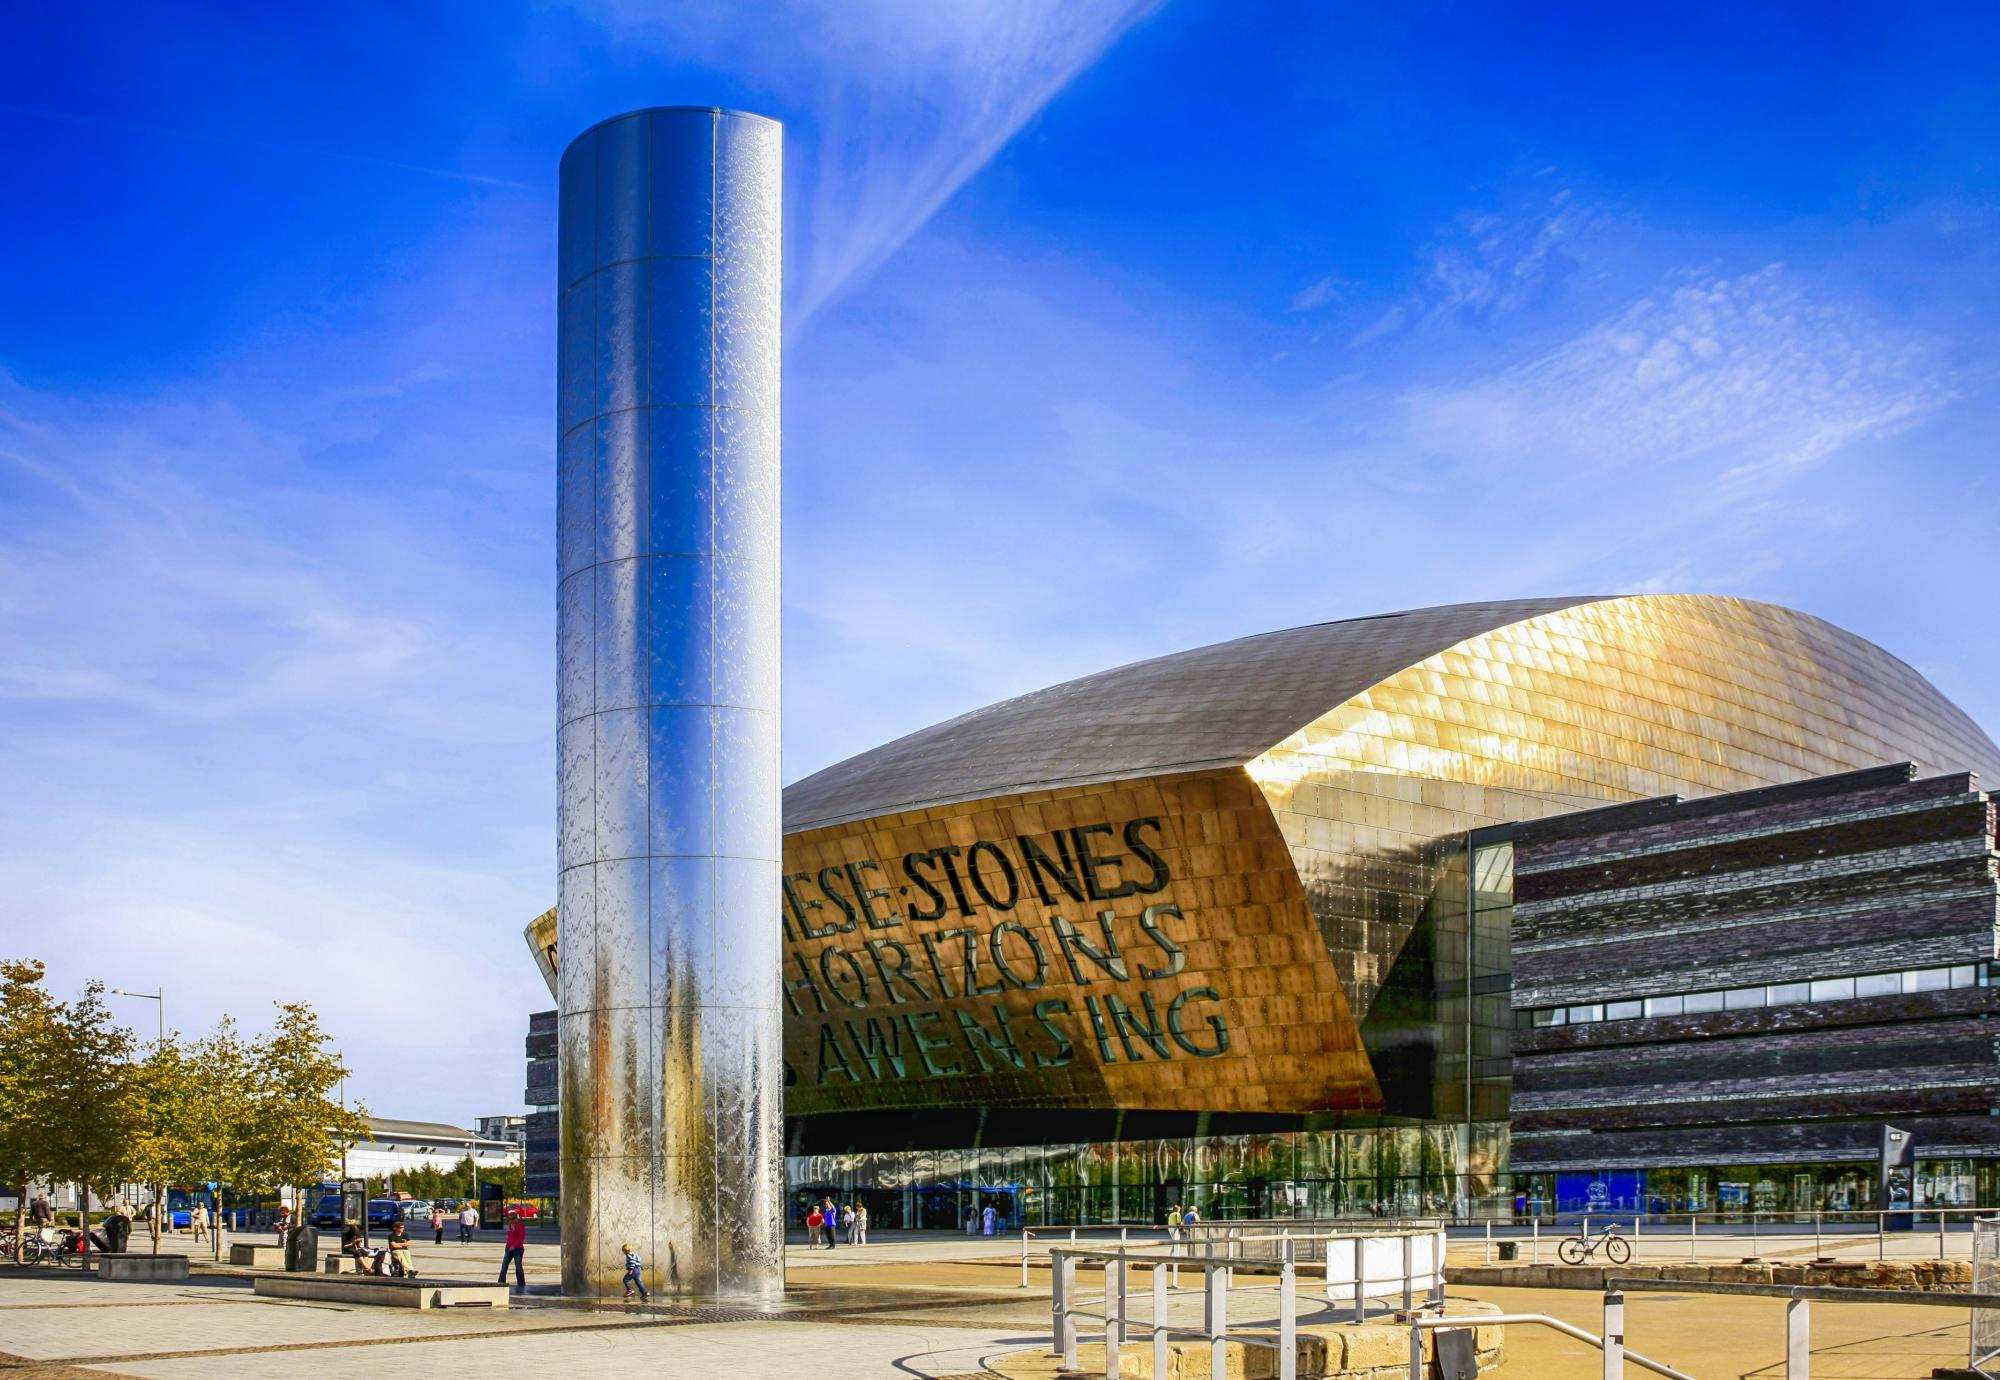 The Wales Millenium Centre building and Torchwood column in Cardiff.